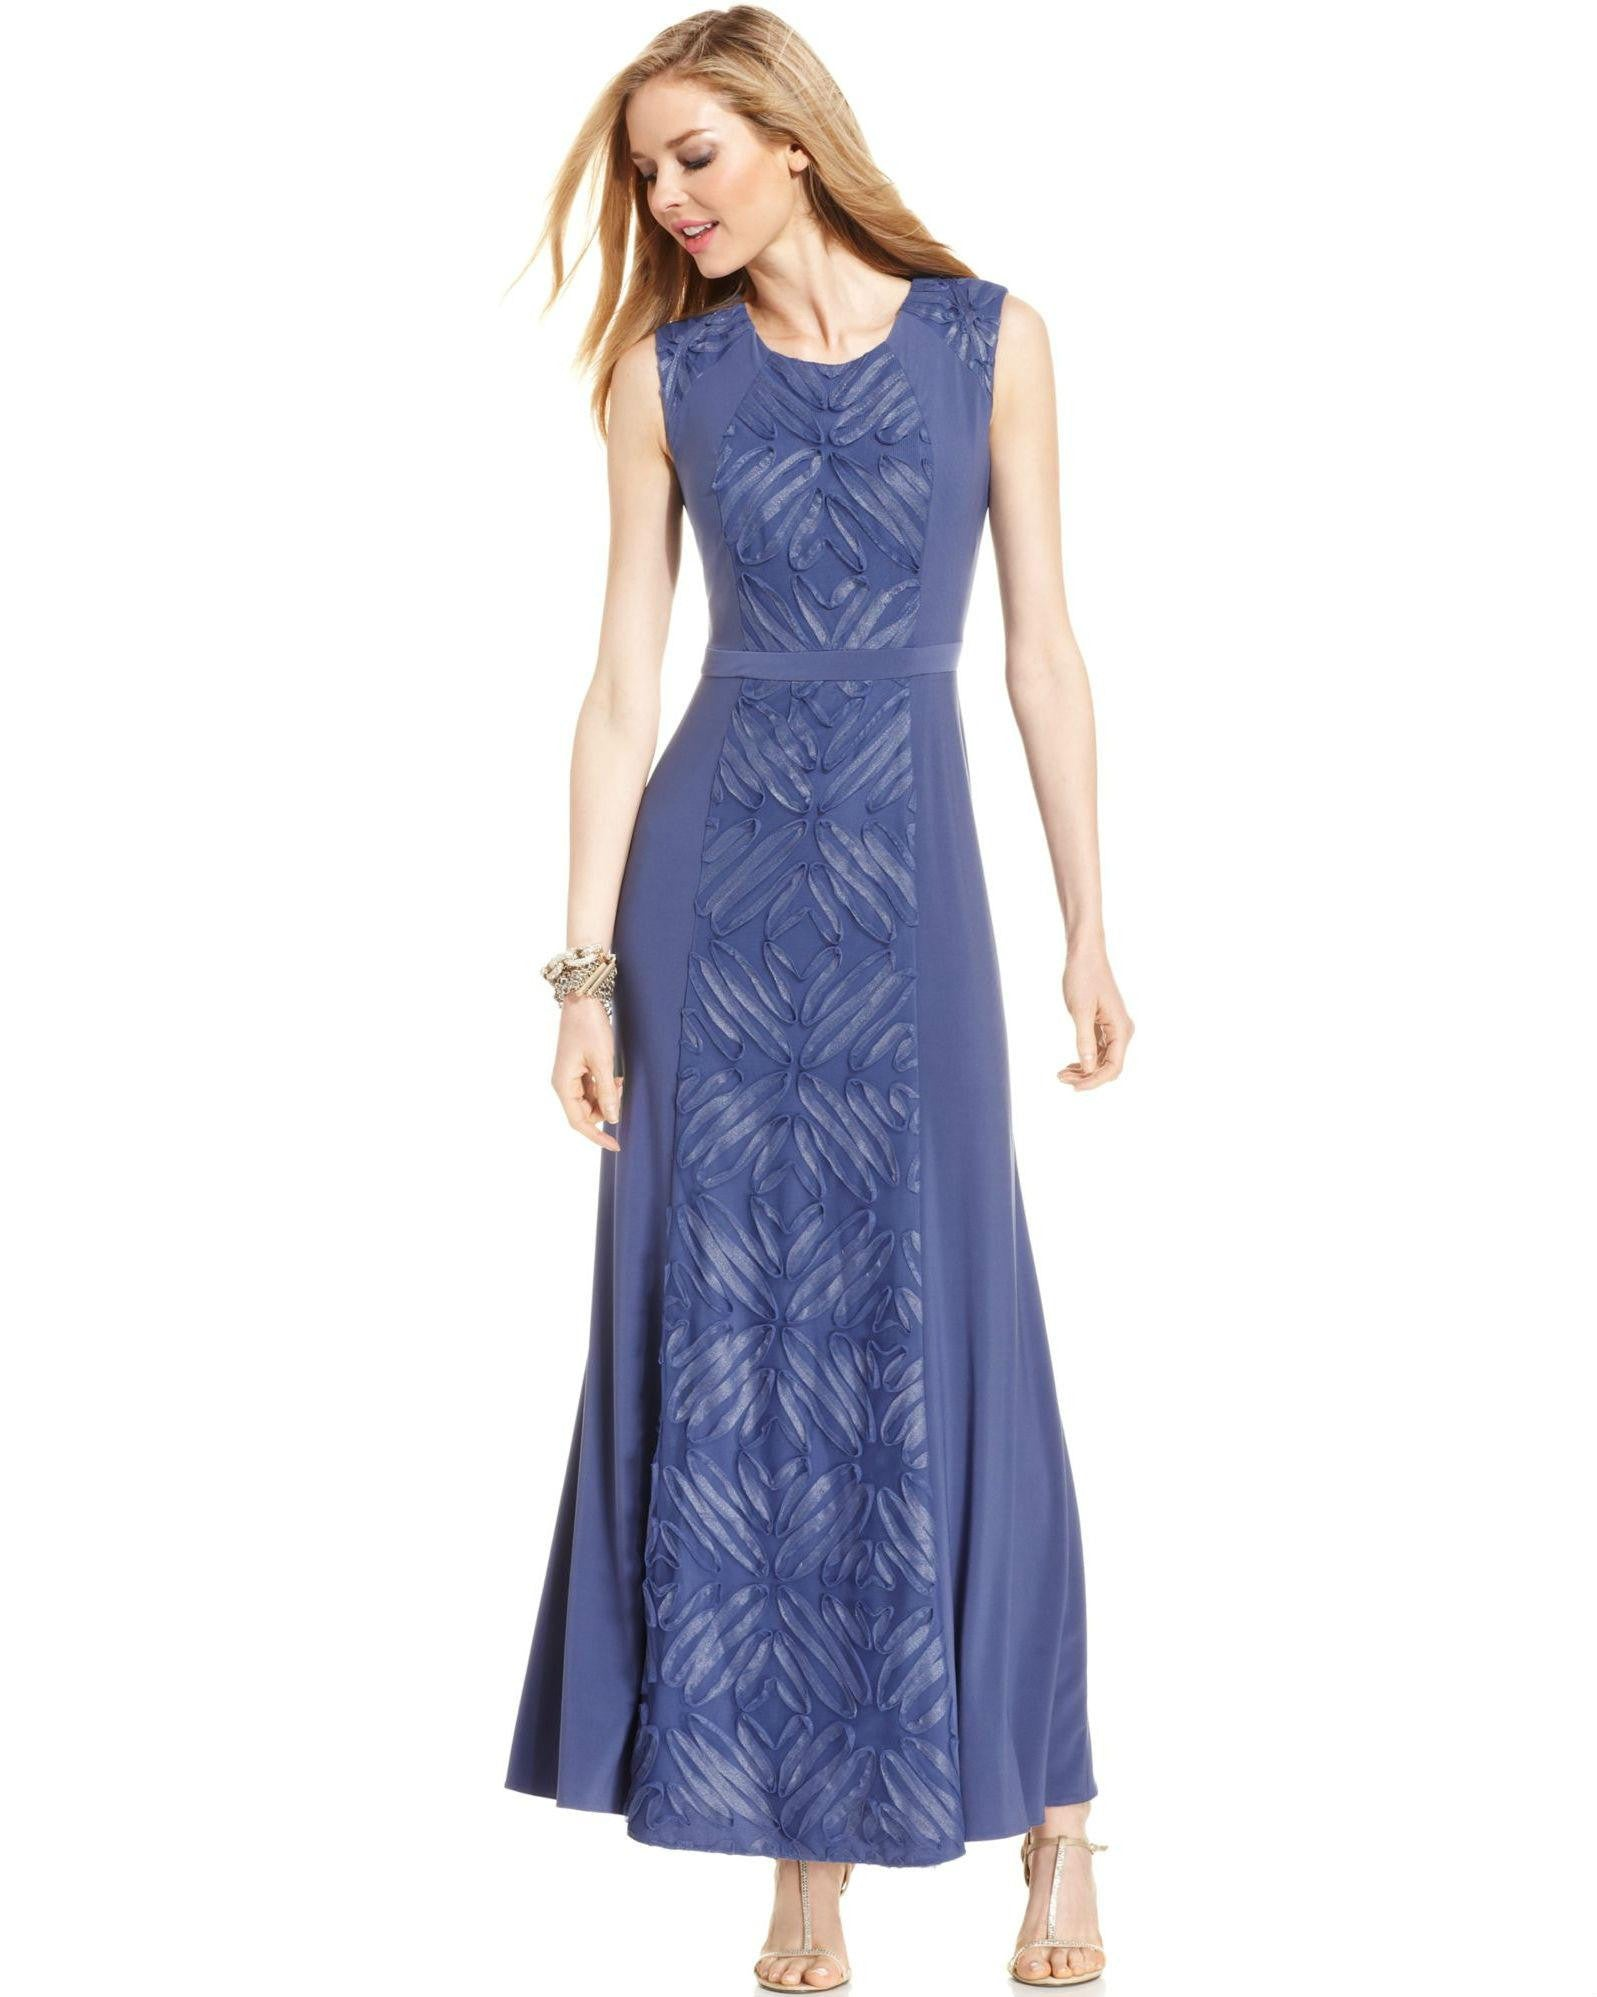 Patra Petite Sleeveless Soutache Panel Gown